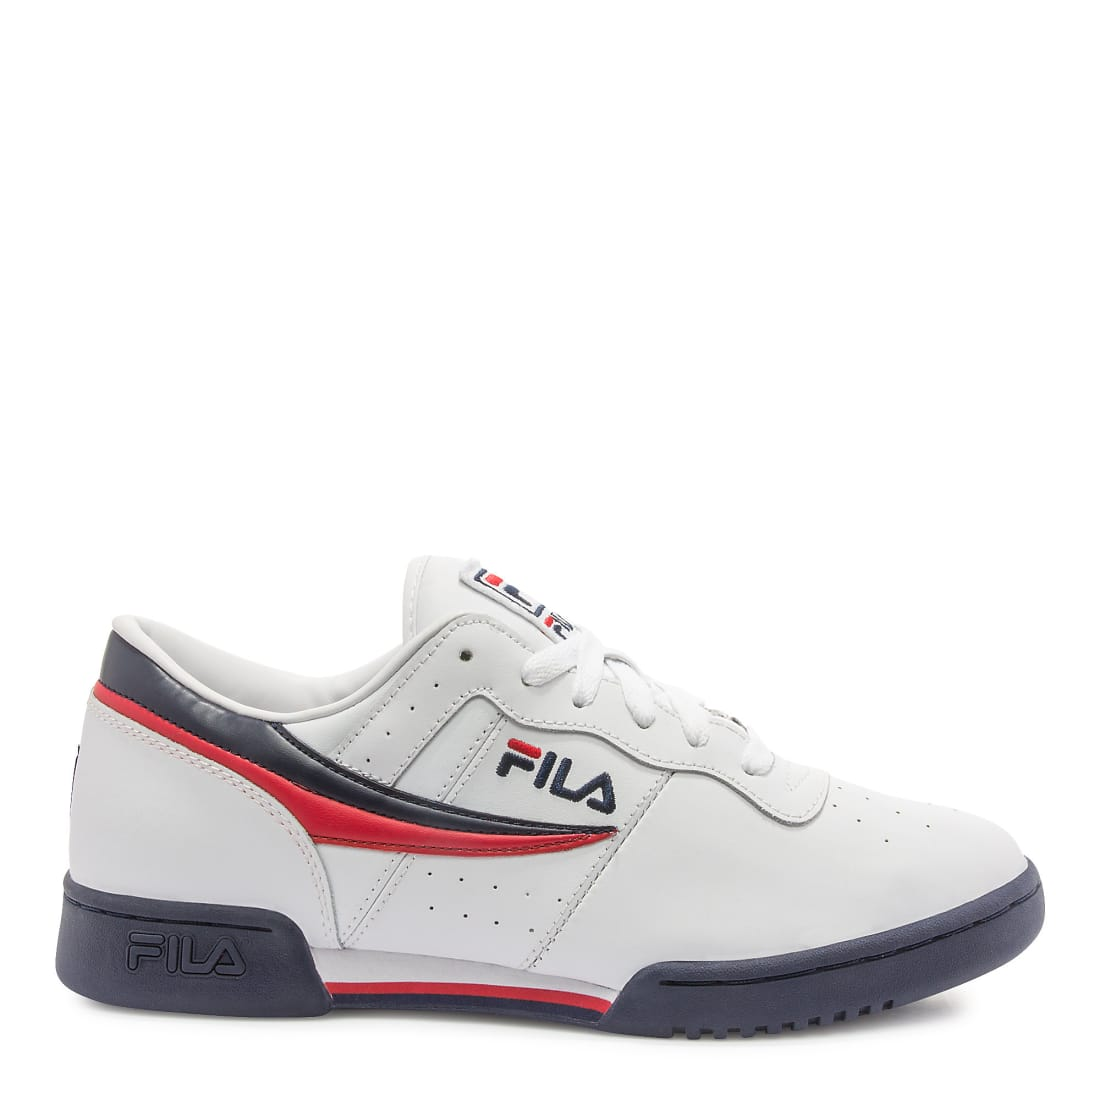 f3e17db5a196 Fila Original Fitness